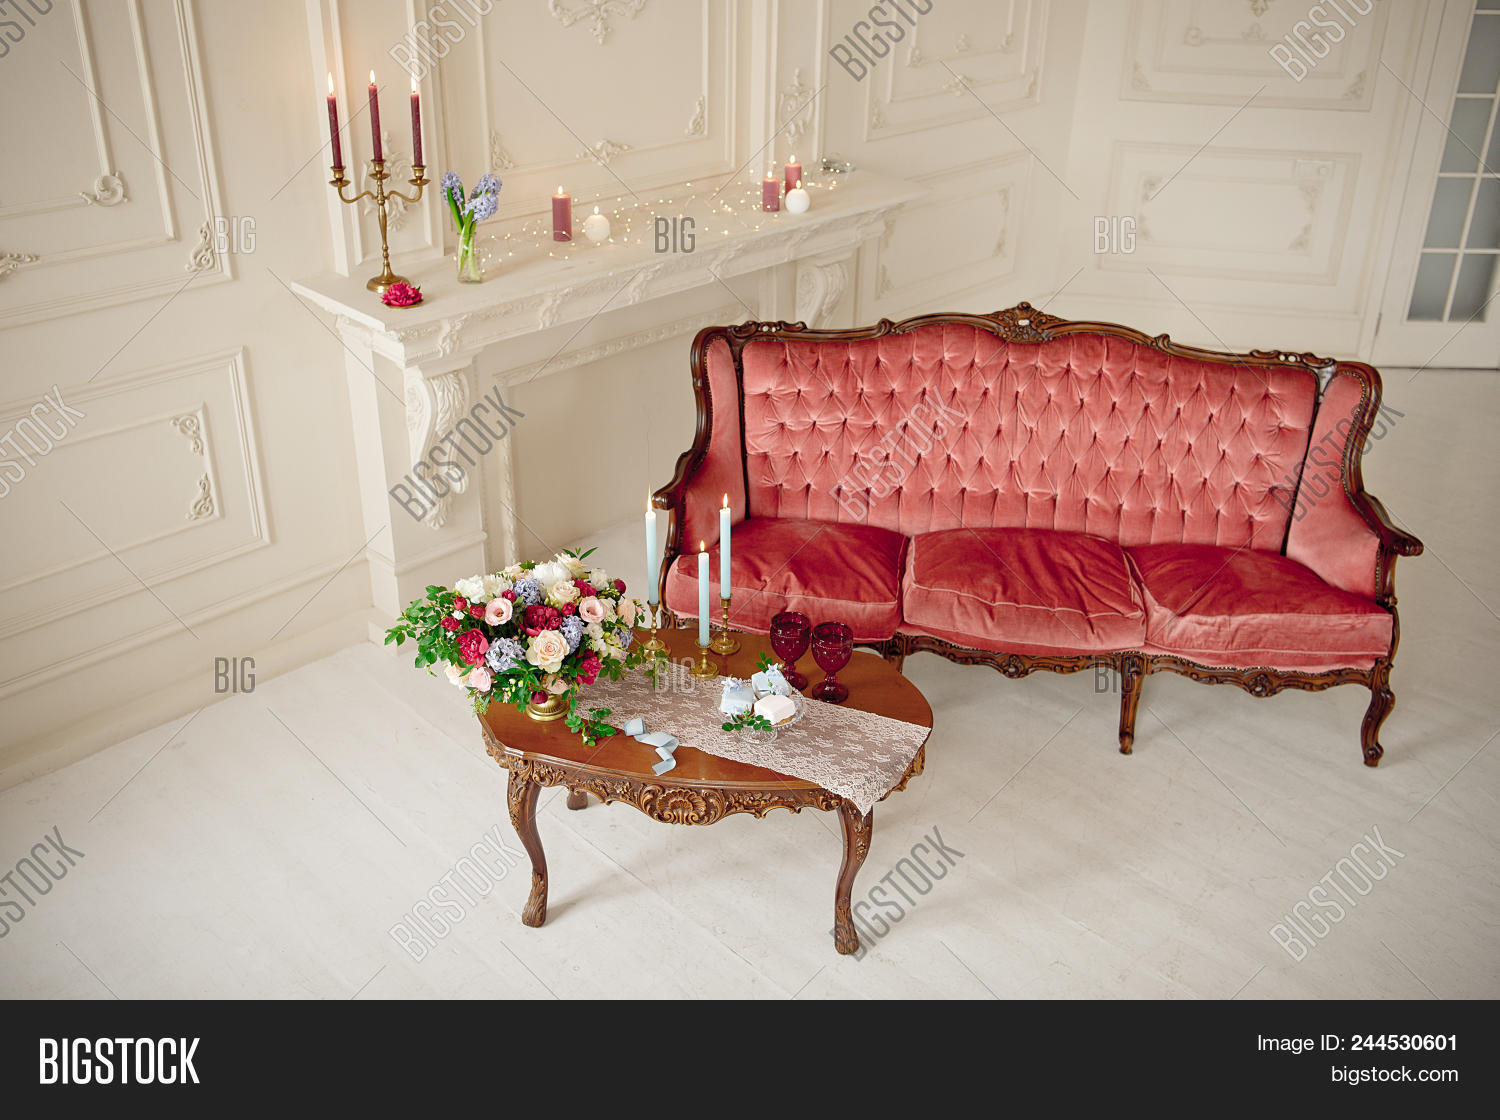 Sensational Baroque Style Interior Image Photo Free Trial Bigstock Gmtry Best Dining Table And Chair Ideas Images Gmtryco